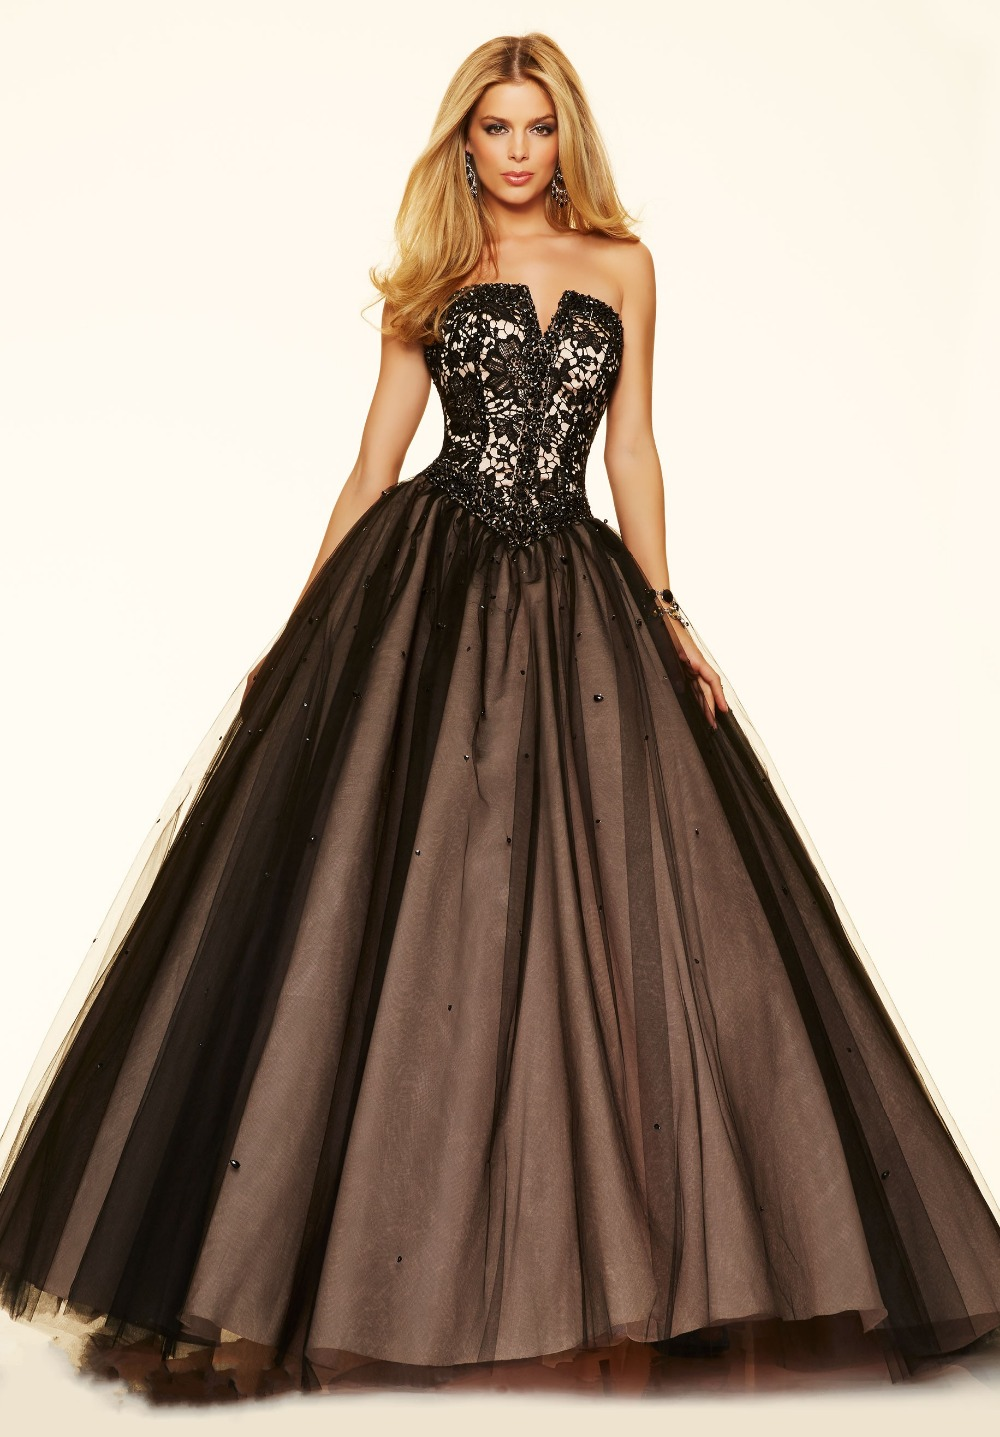 Black Lace Long Sleeves With Slip Side Ball Gown Formal ...  |Formal Ball Dresses With Lace